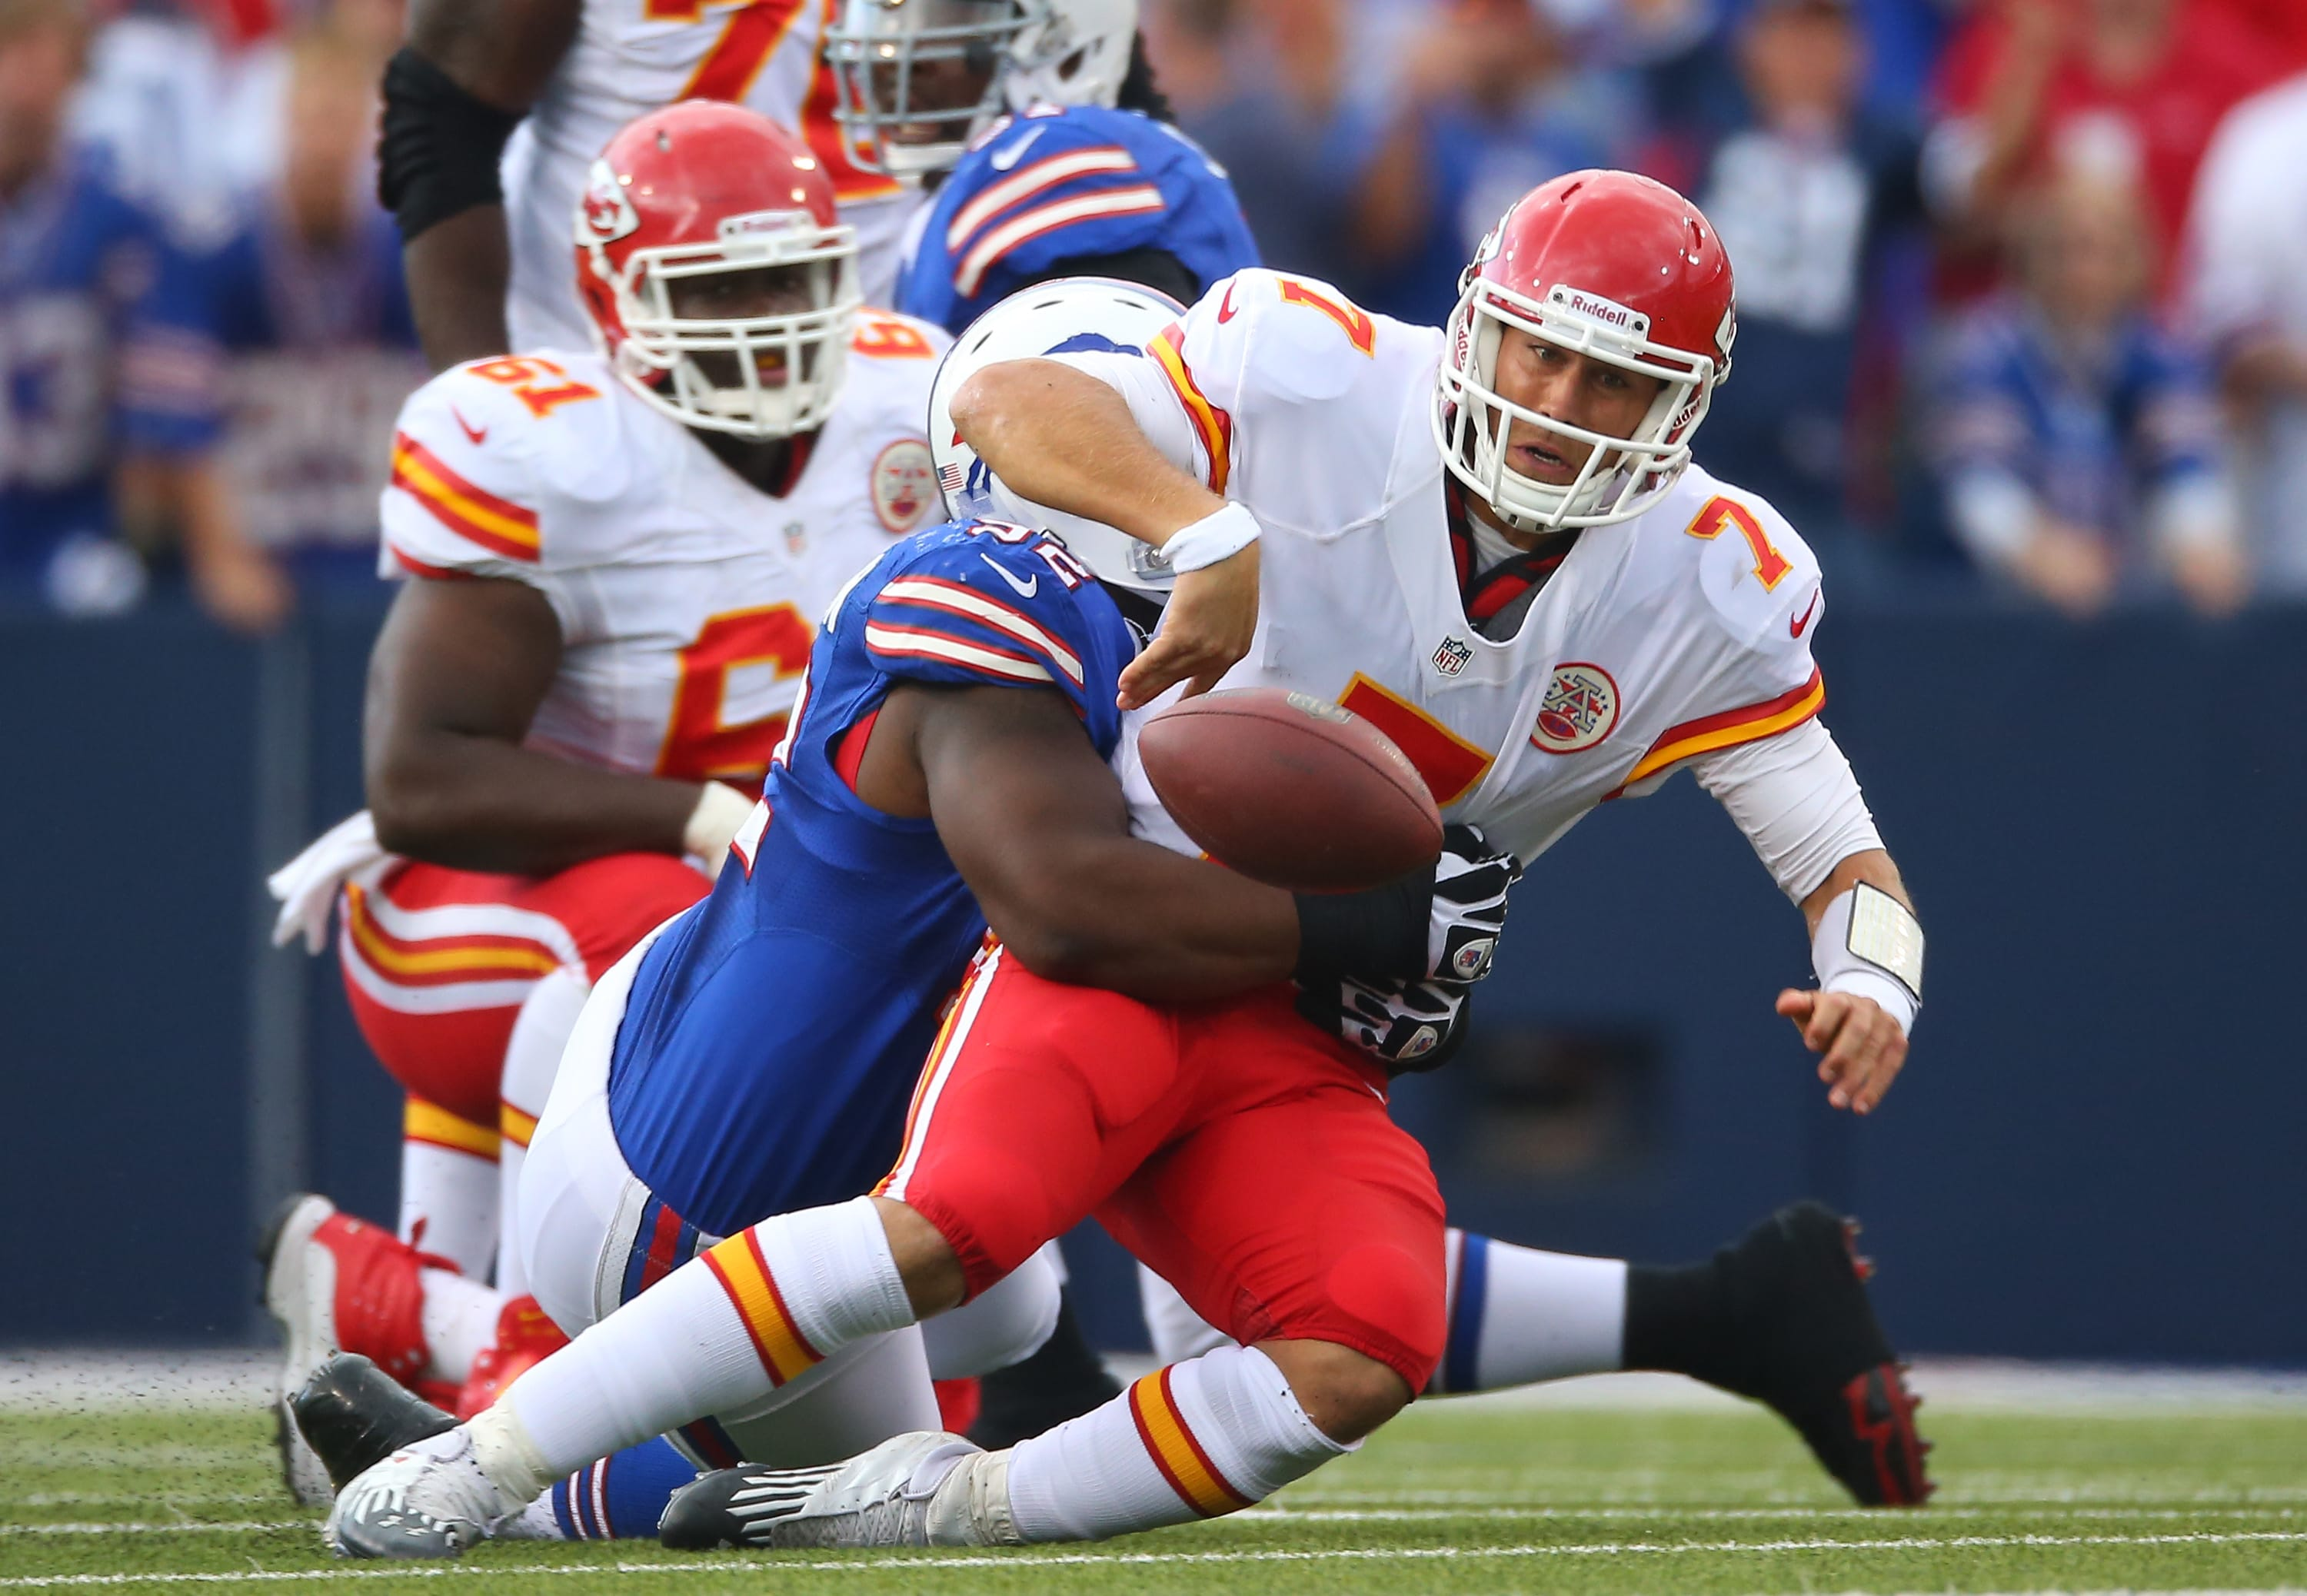 Matt Cassel #7 of the Kansas City Chiefs fumbles the ball (Photo by Tom Szczerbowski/Getty Images)